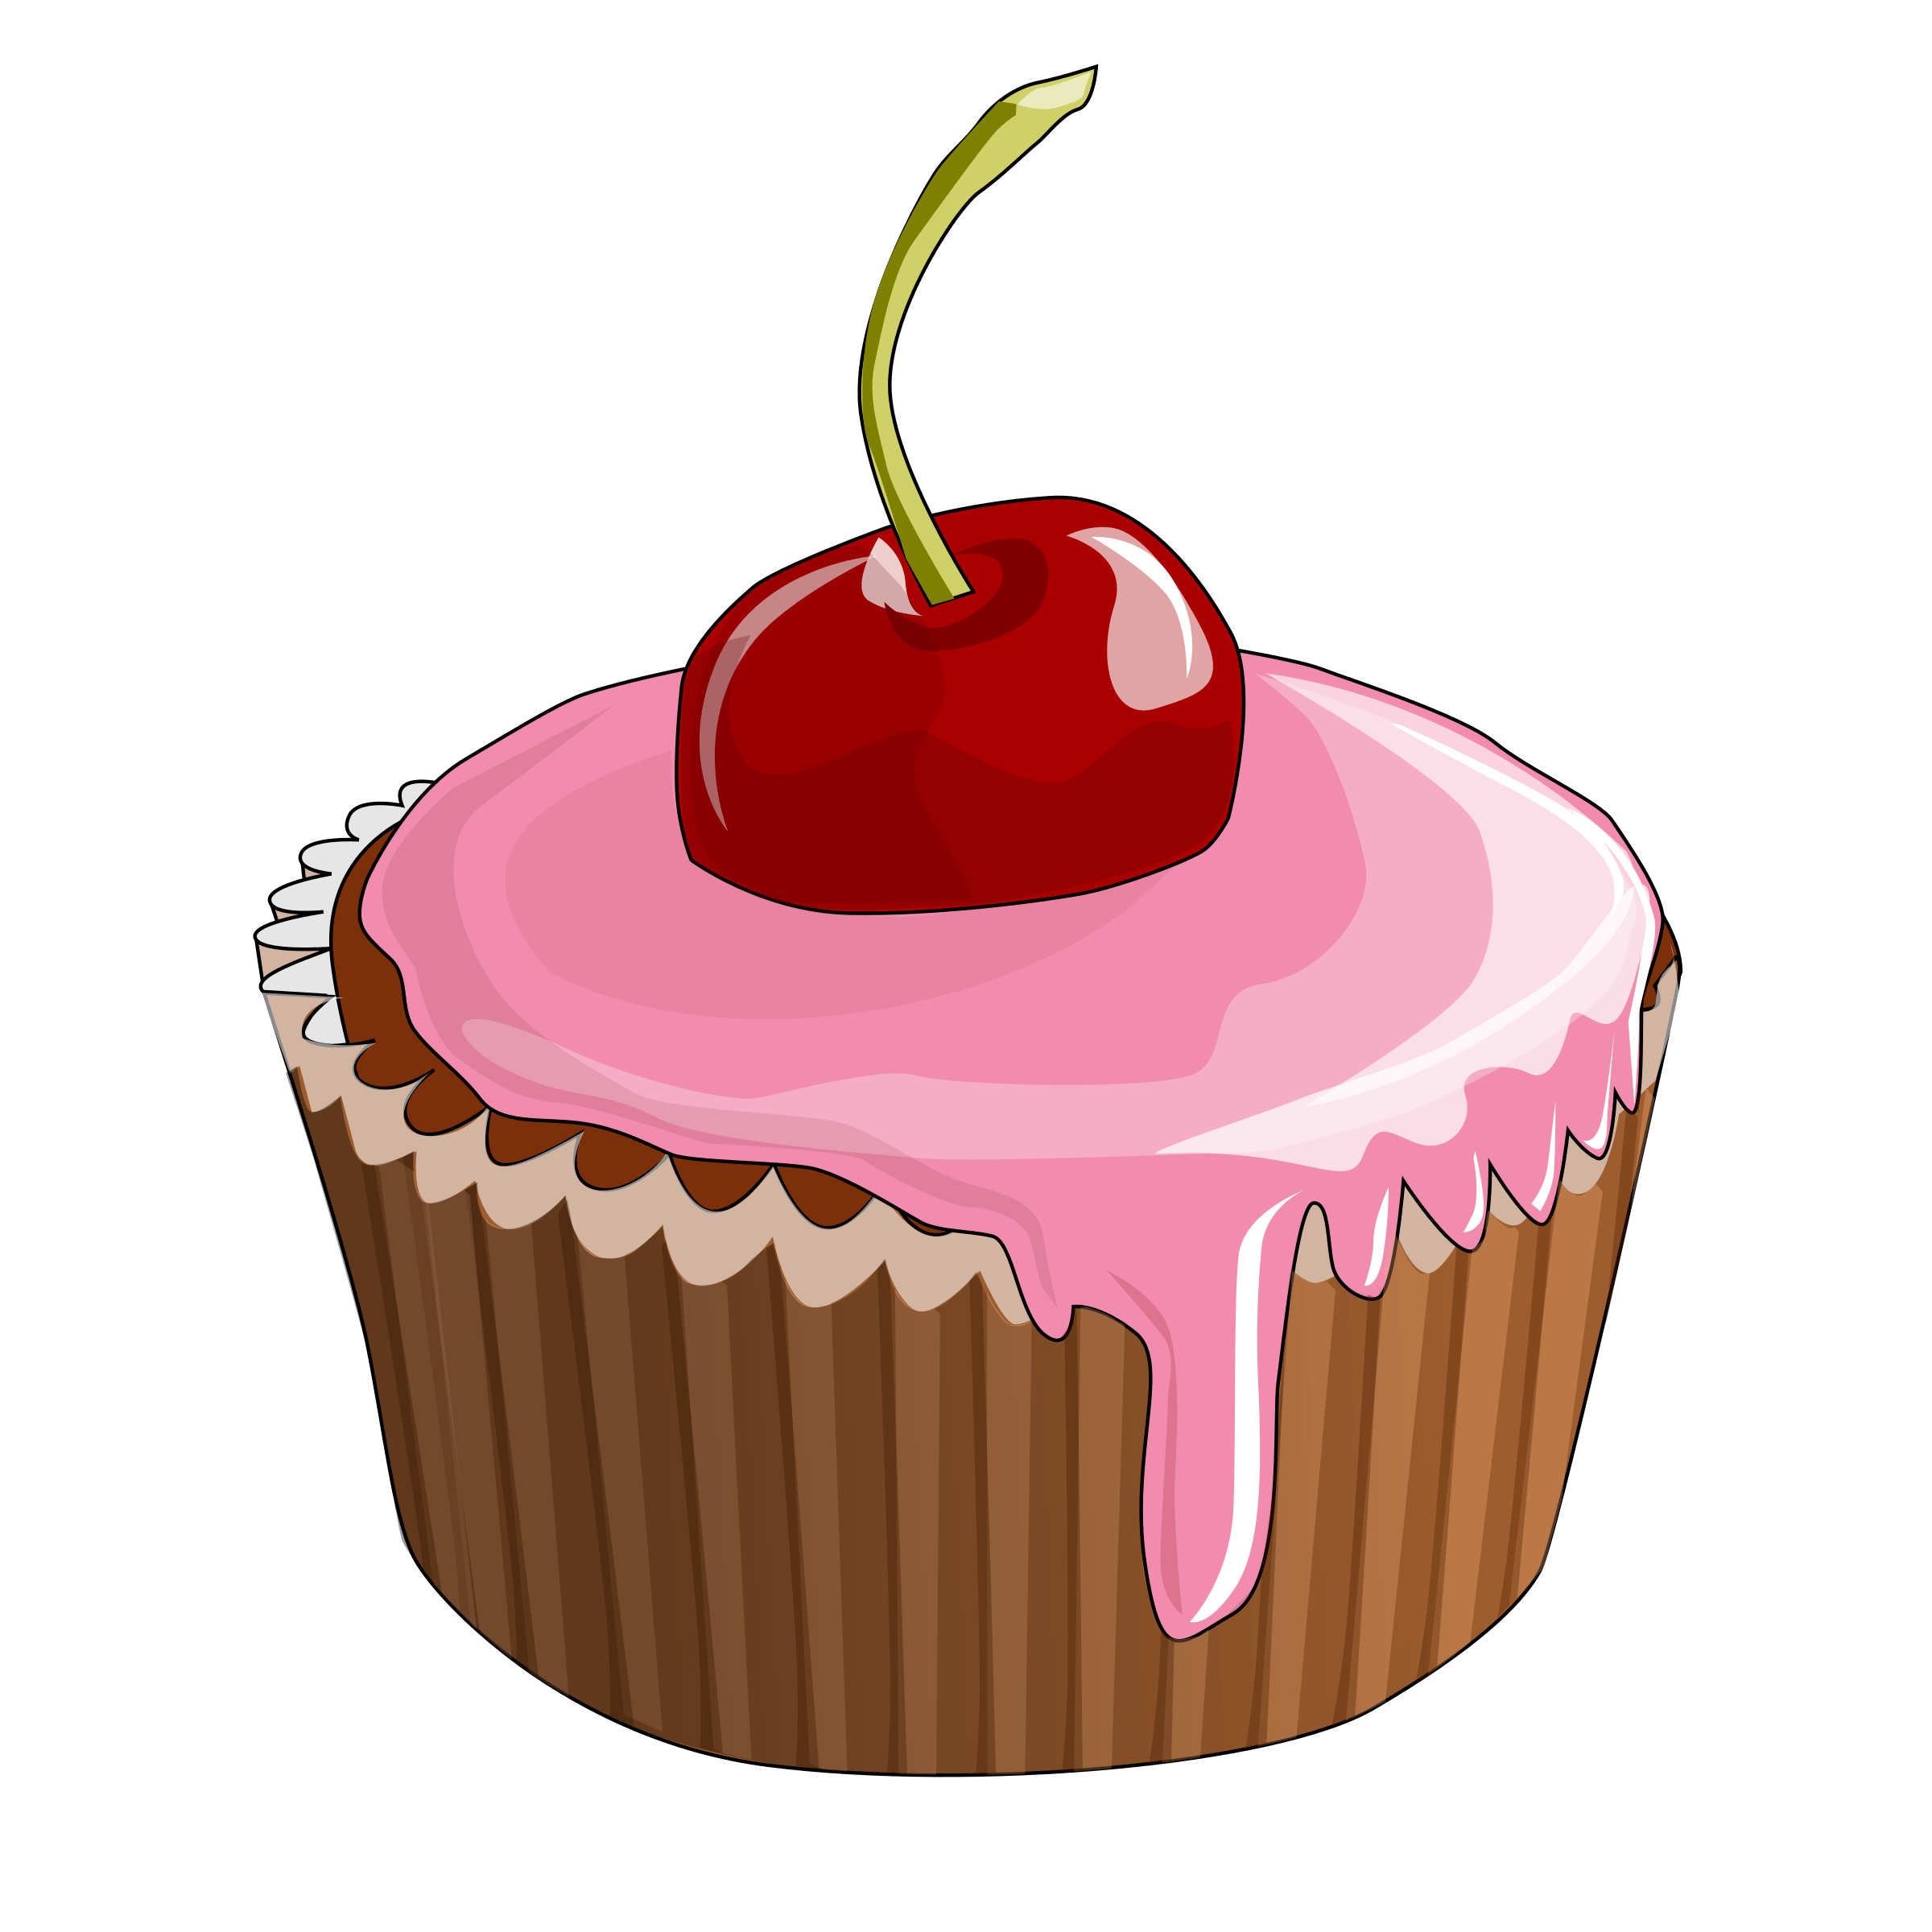 Cupcake Vector Art At Getdrawingscom Free For Personal Use